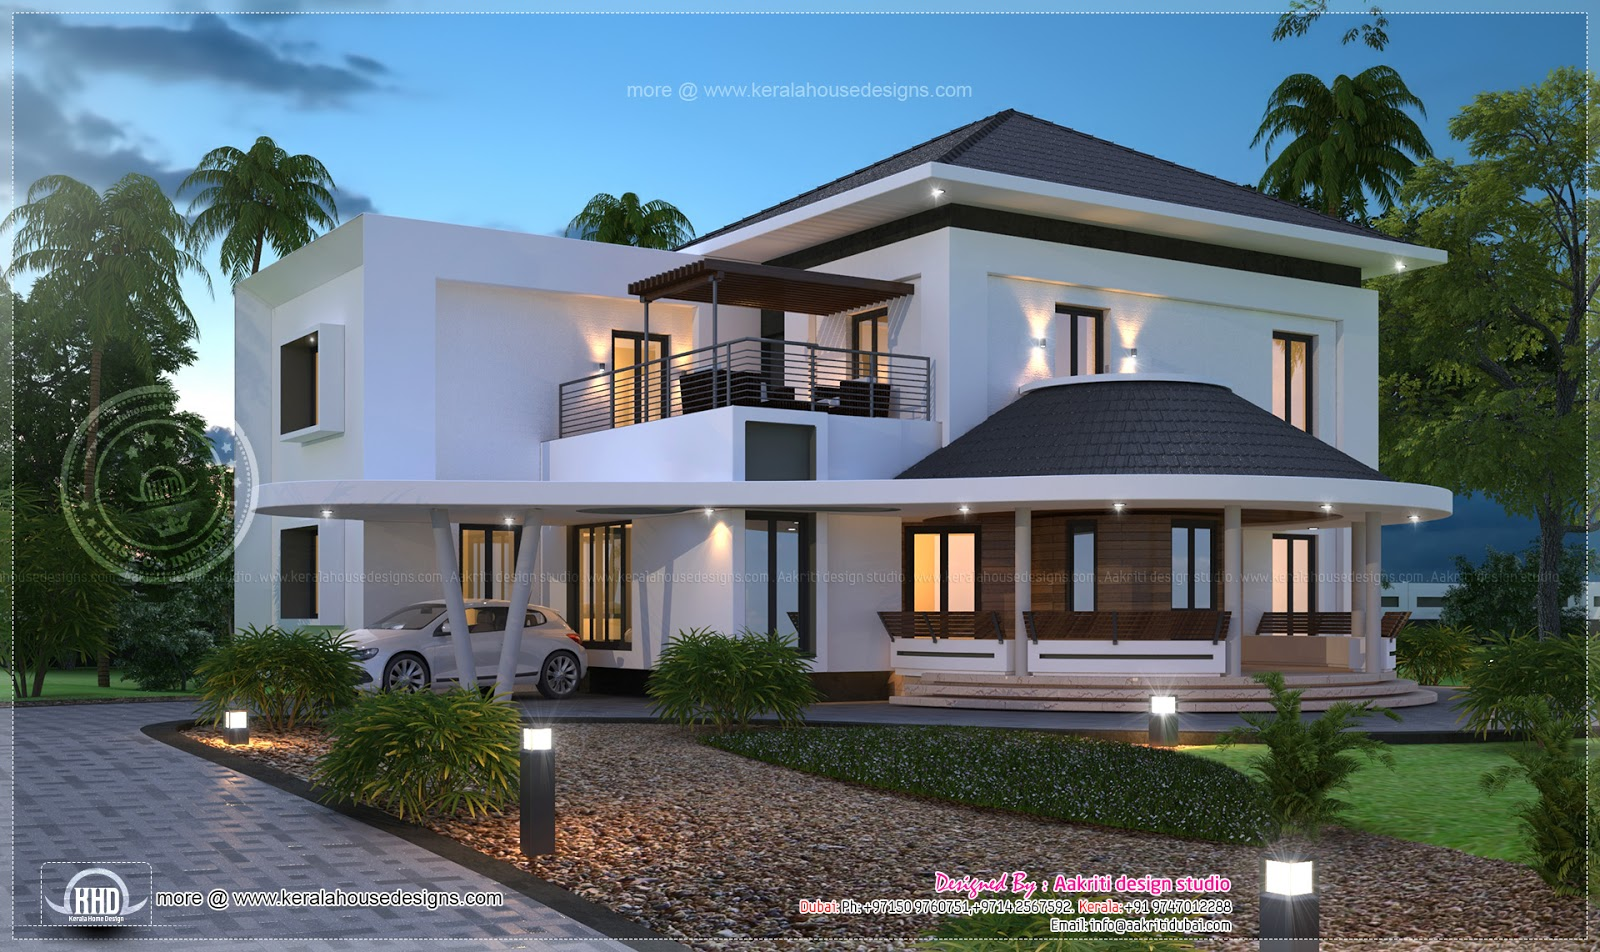 Beautiful 3200 sq ft modern villa exterior home kerala plans Arch design indian home plans